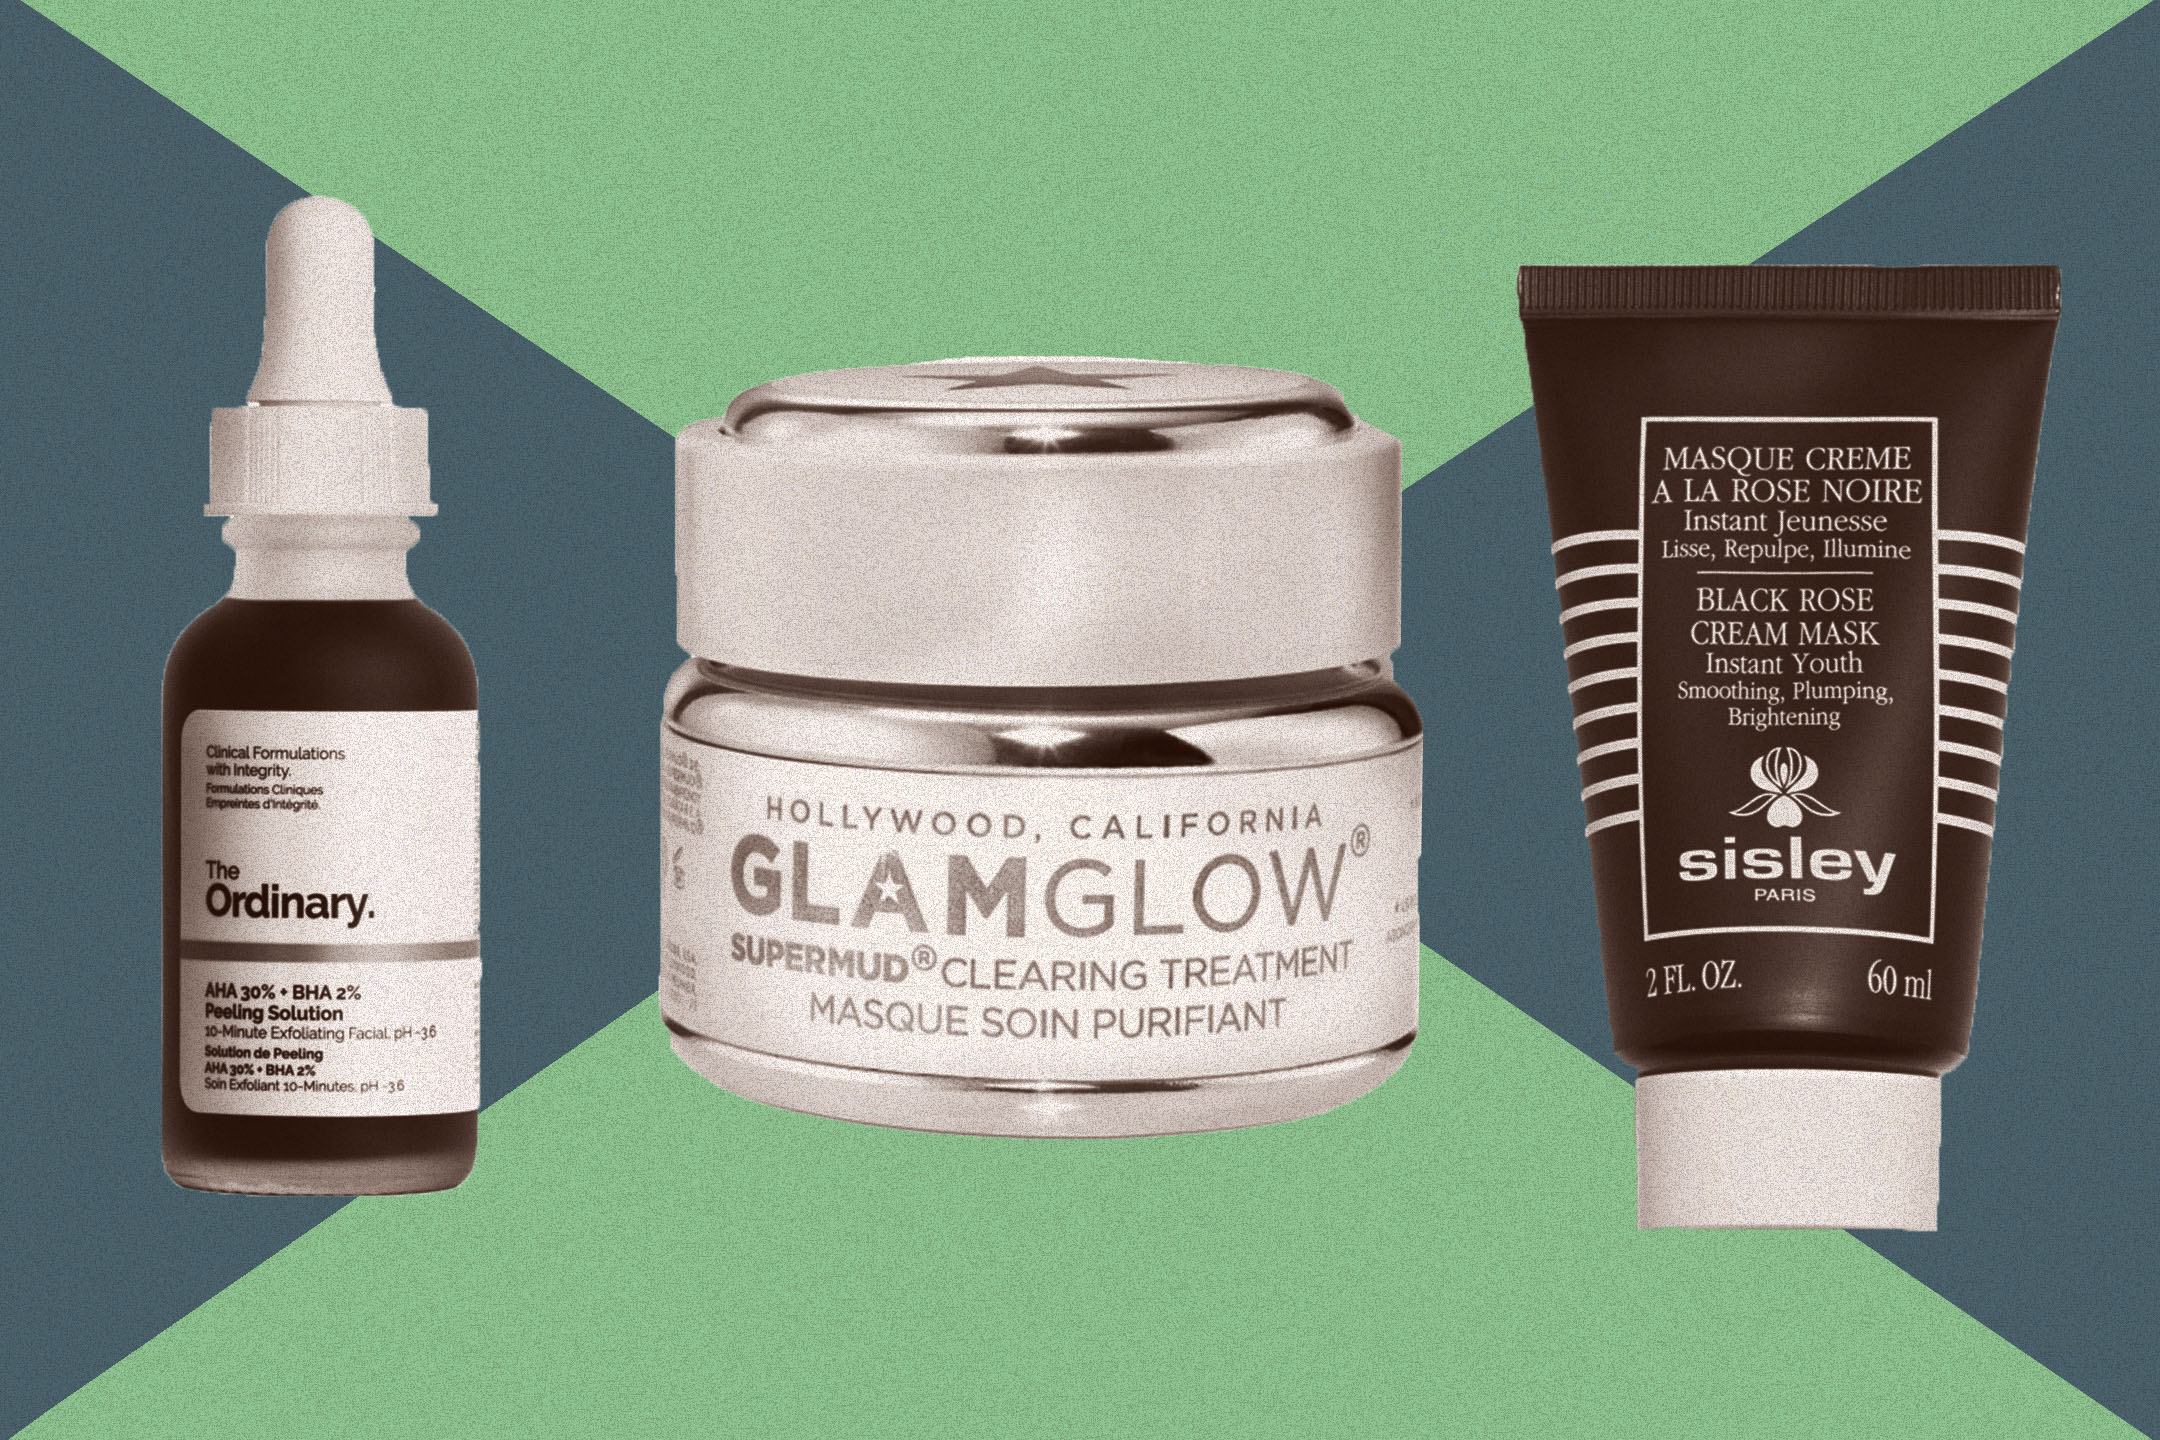 The Ordinary, Glam glow, and Sisley are among the top face masks.